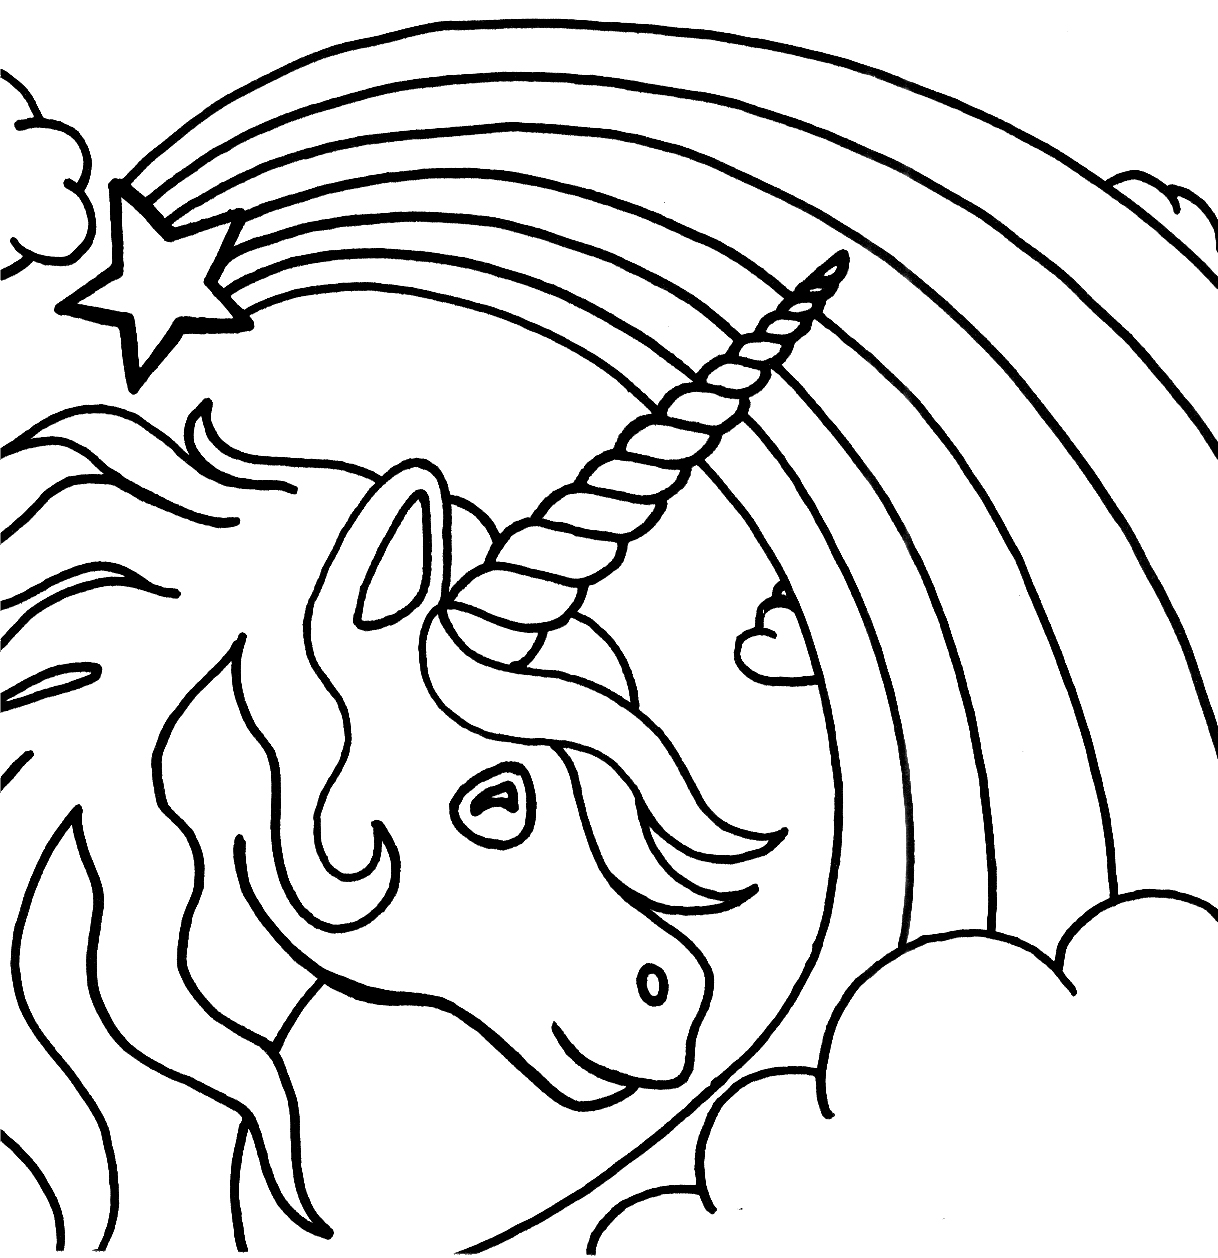 free printable coloring pages of unicorns unicorn coloring pages to download and print for free unicorns pages printable of coloring free